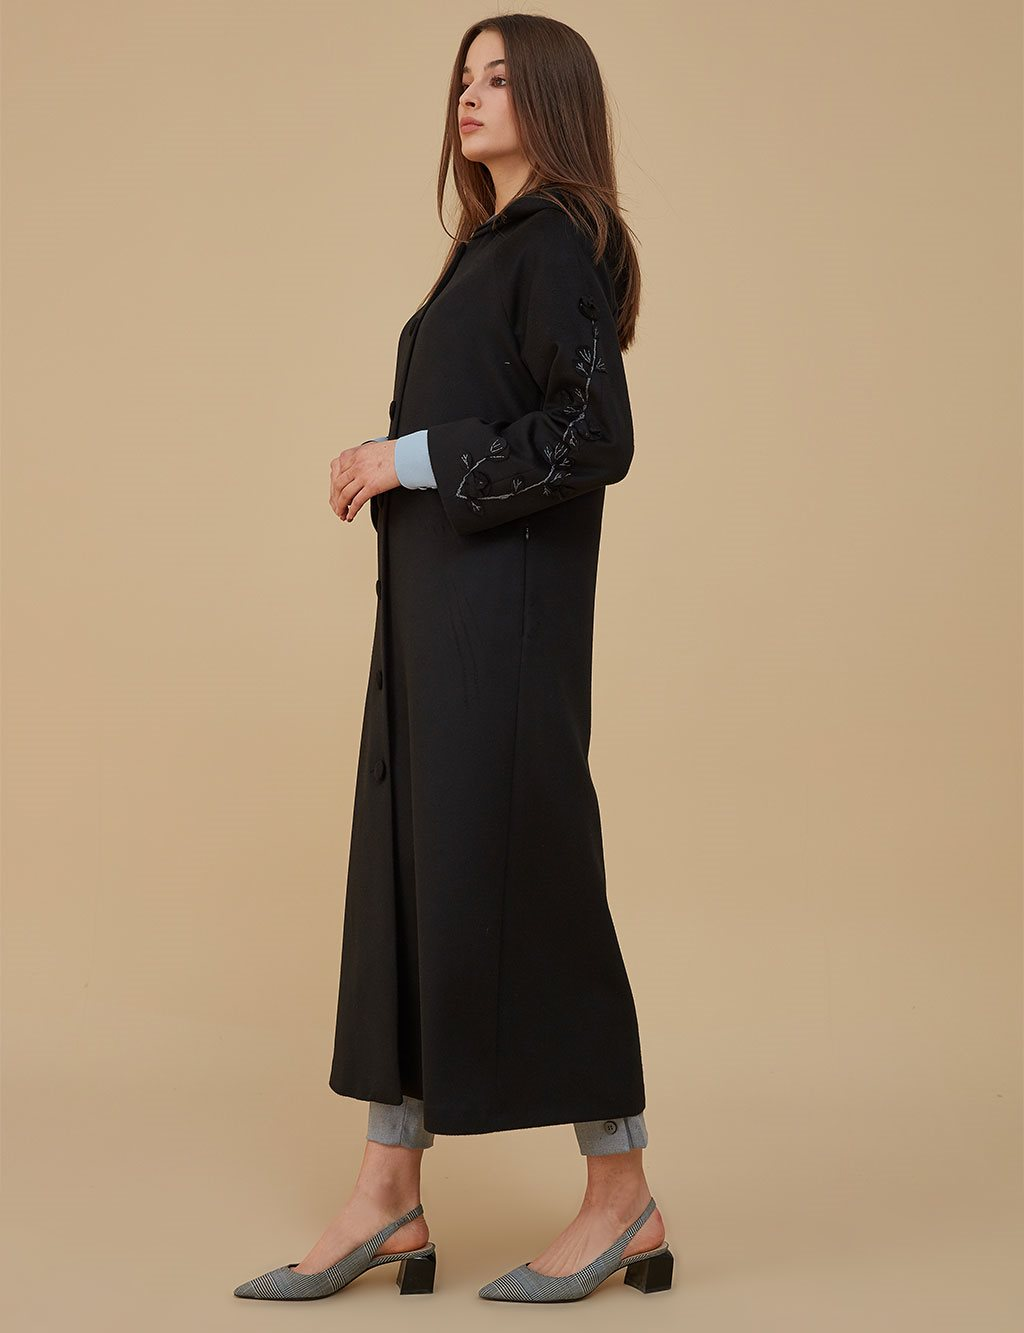 Embroidered Coat With Hood A9 17081 Black